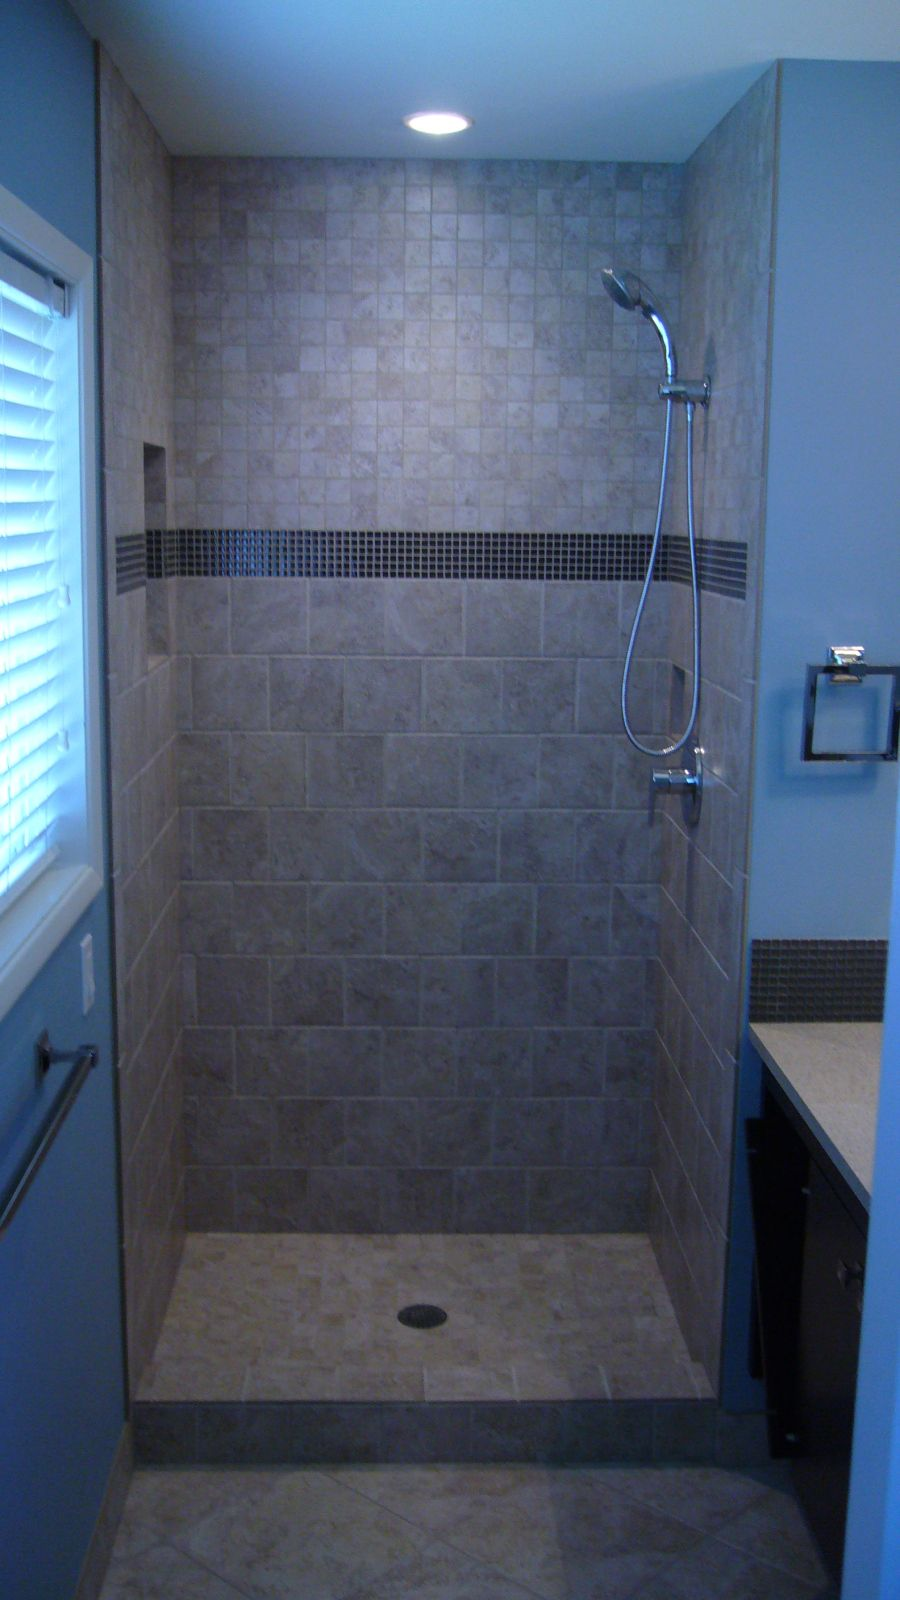 New Tiled Shower Stall With Images Shower Stall Small